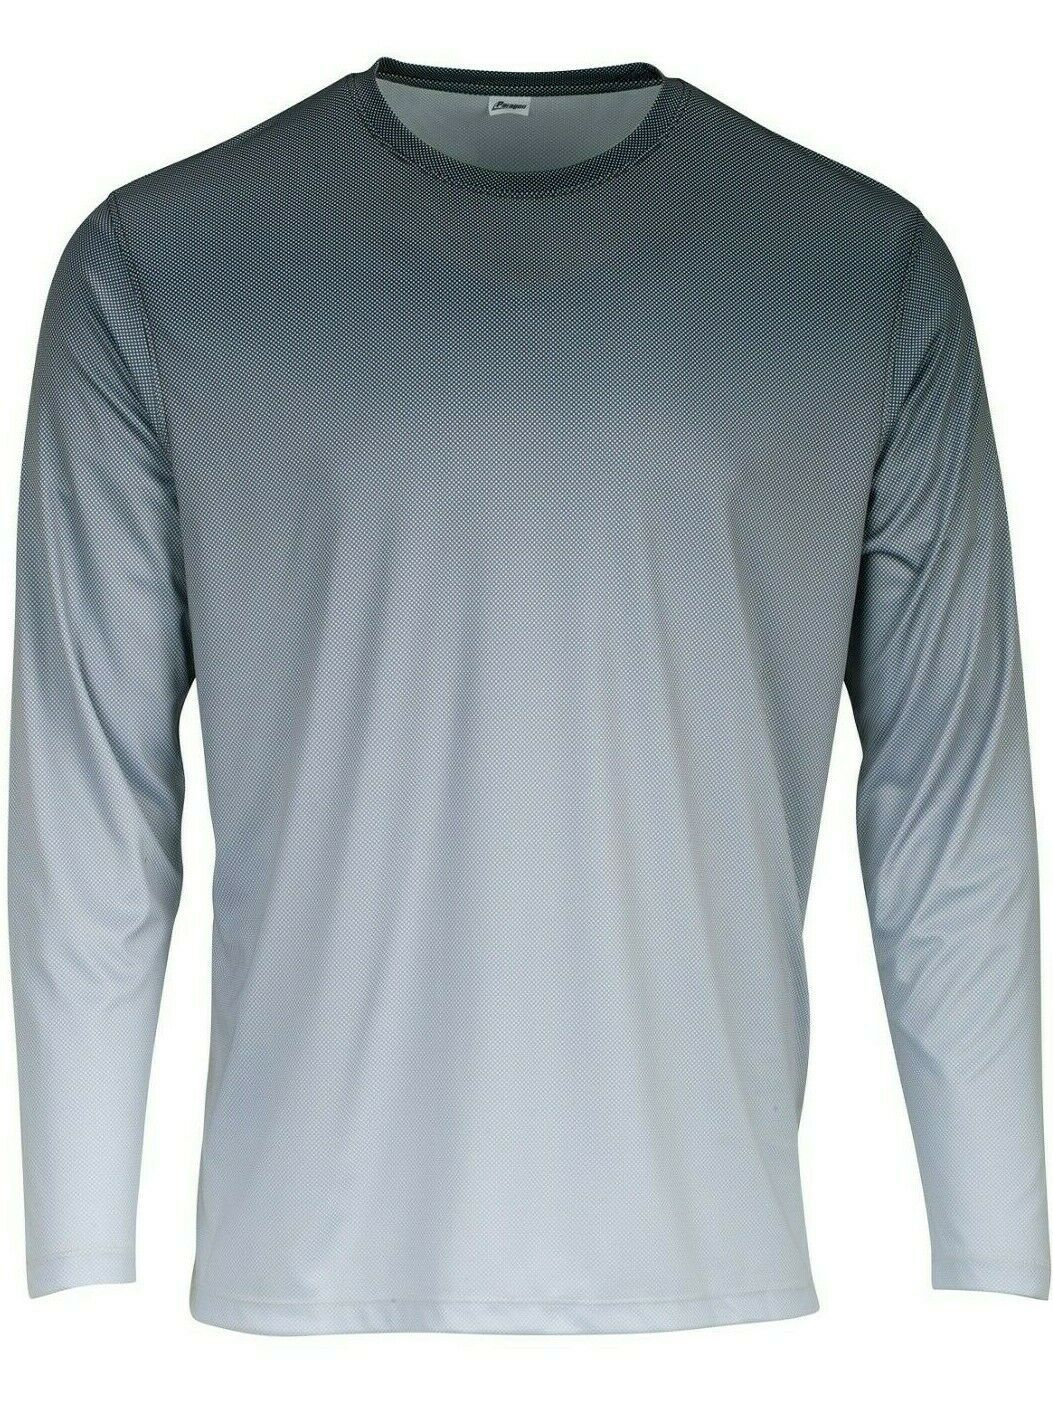 Sun Protection Long Sleeve Dri Fit Graphite Black to Gray fade shirt SPF 50+